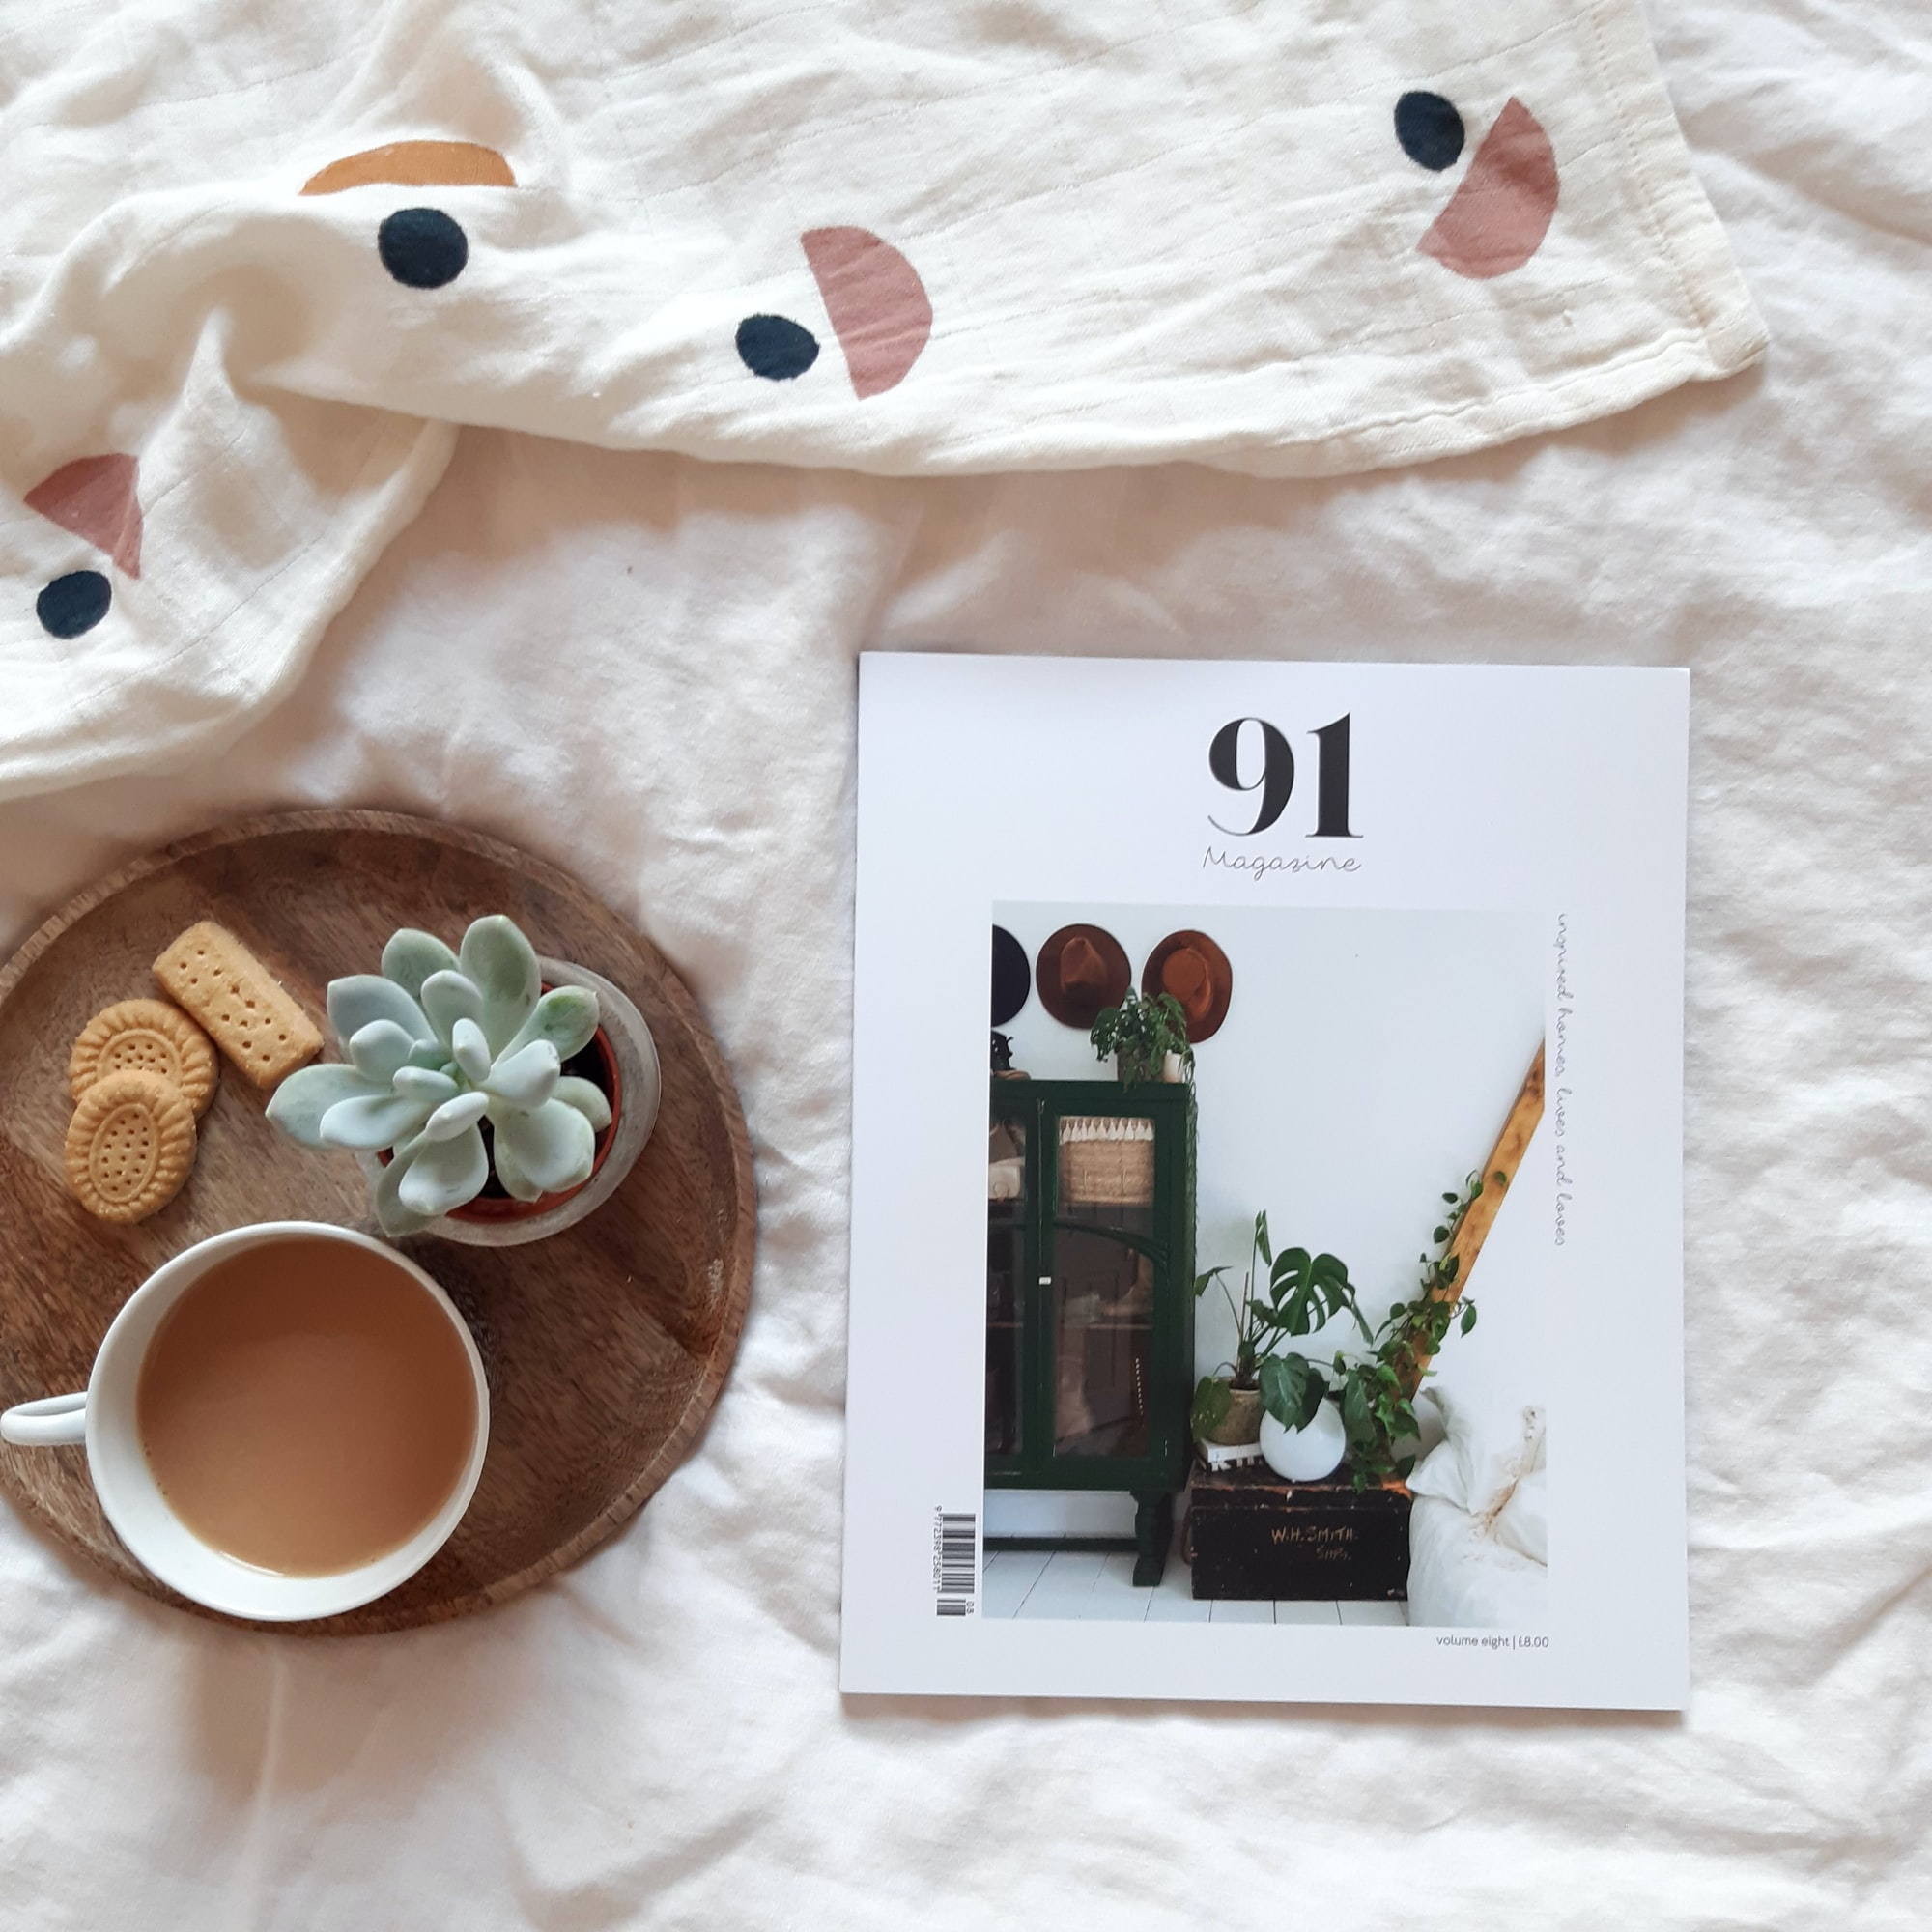 a print magazine about interiors and lifestyle on a bed with a cup of tea and biscuits and succulent on a tray.